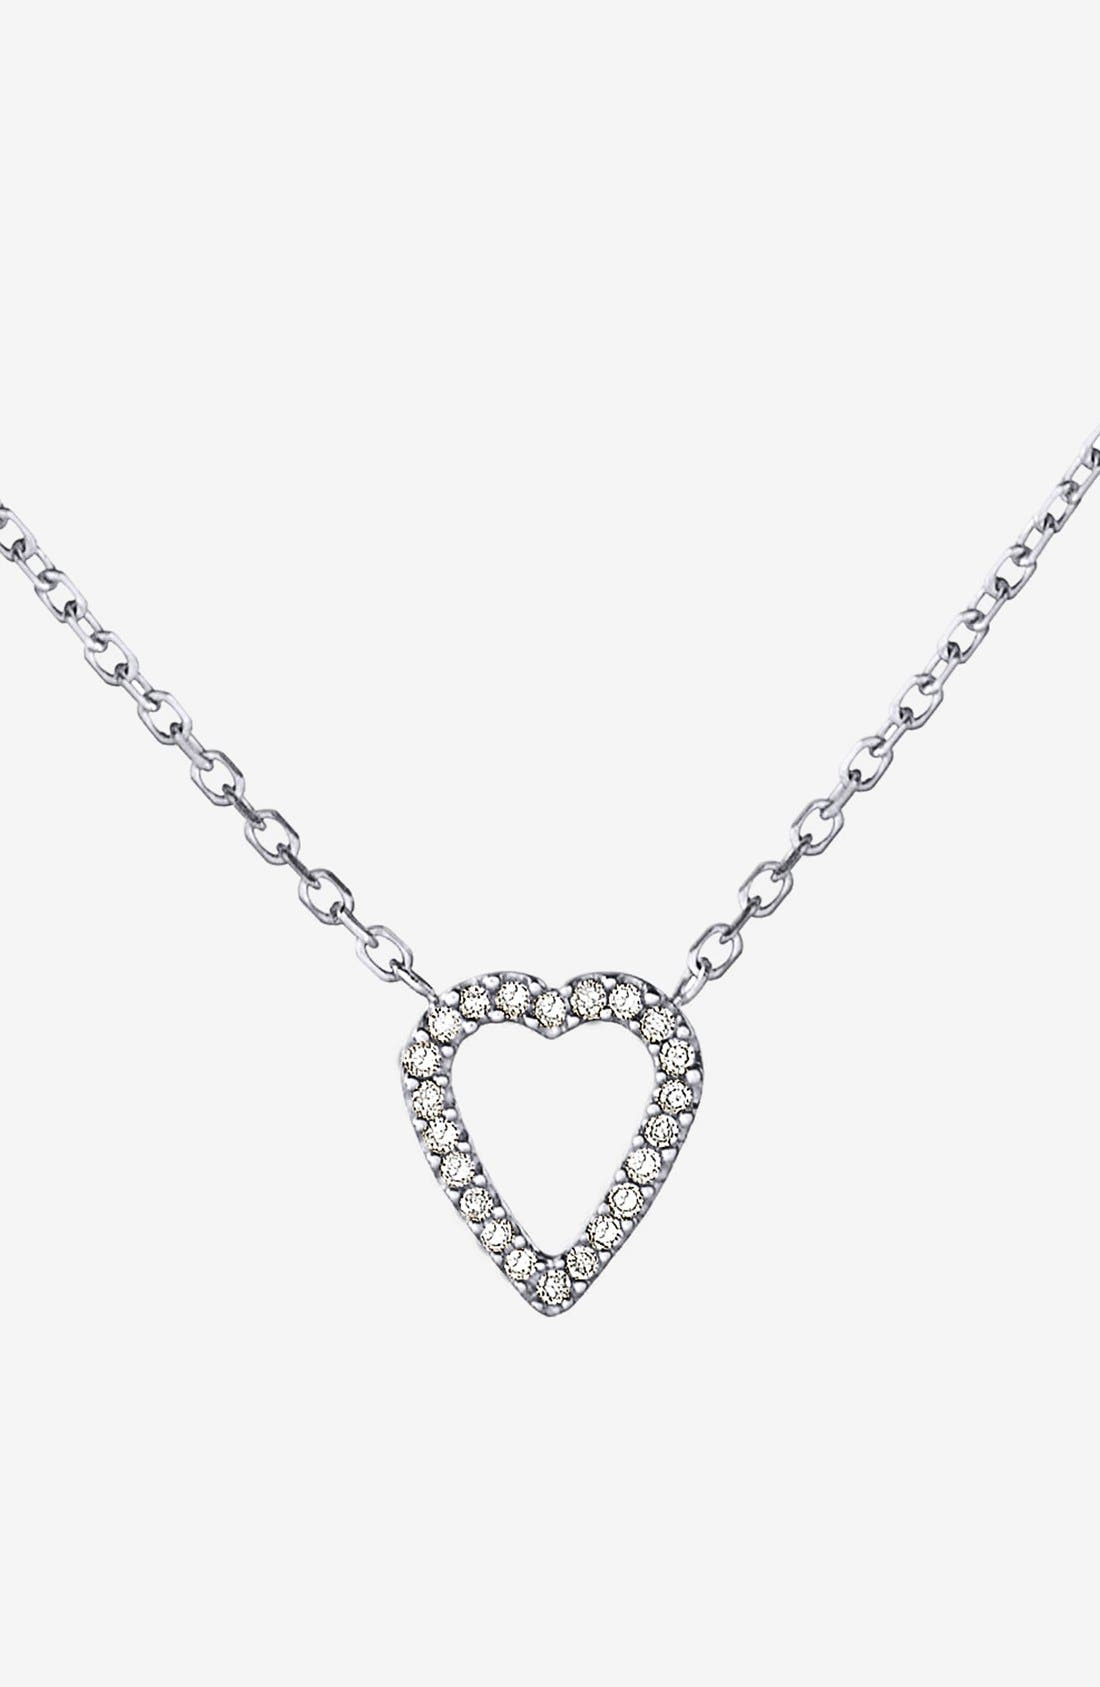 Alternate Image 1 Selected - Adina Reyter Pavé Diamond Heart Pendant Necklace (Online Only)